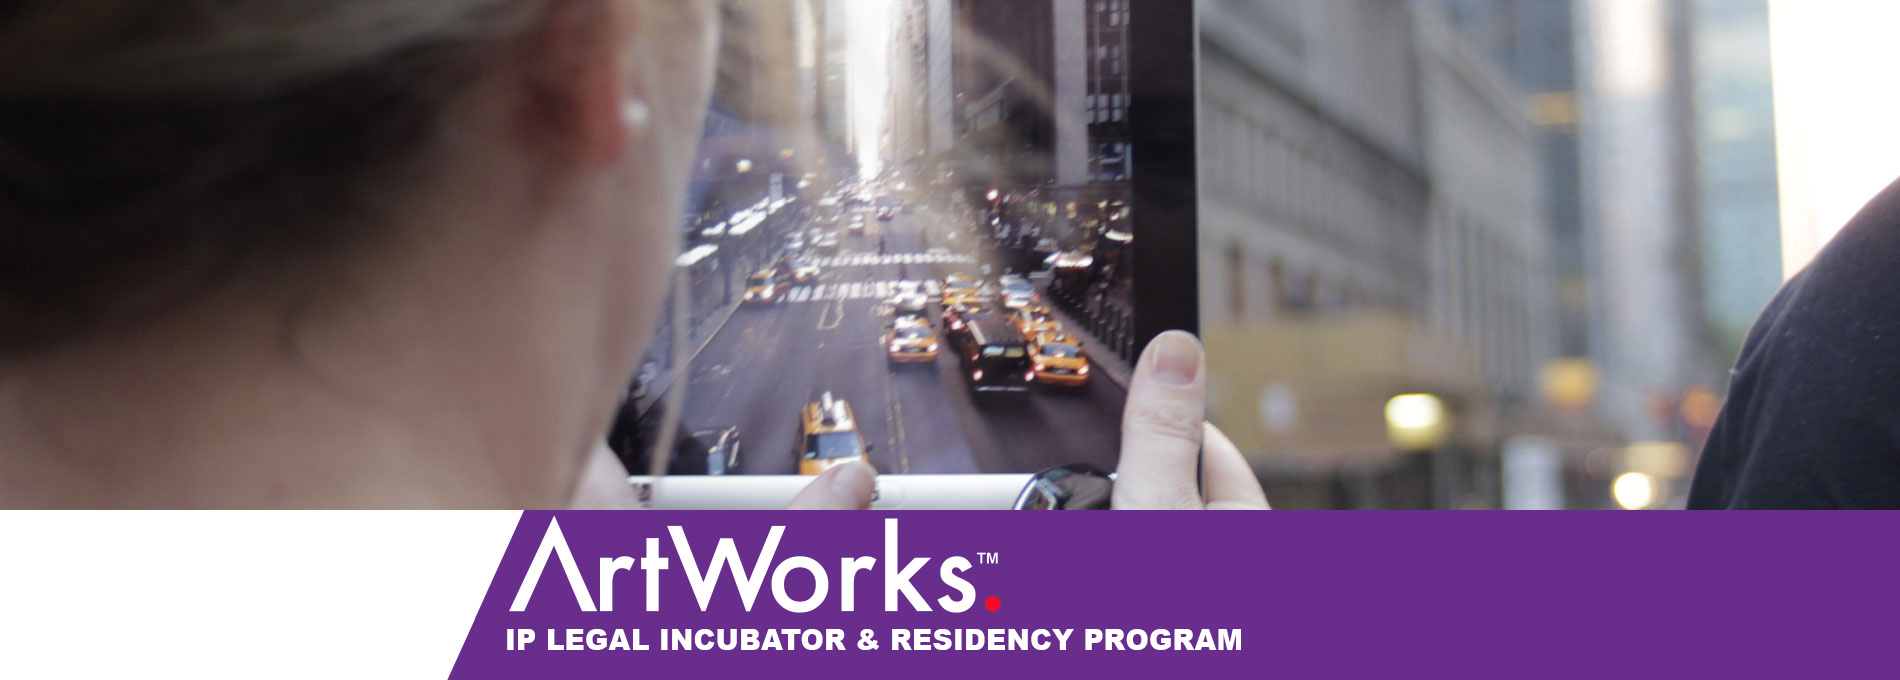 IP Legal Incubator & Residency Program